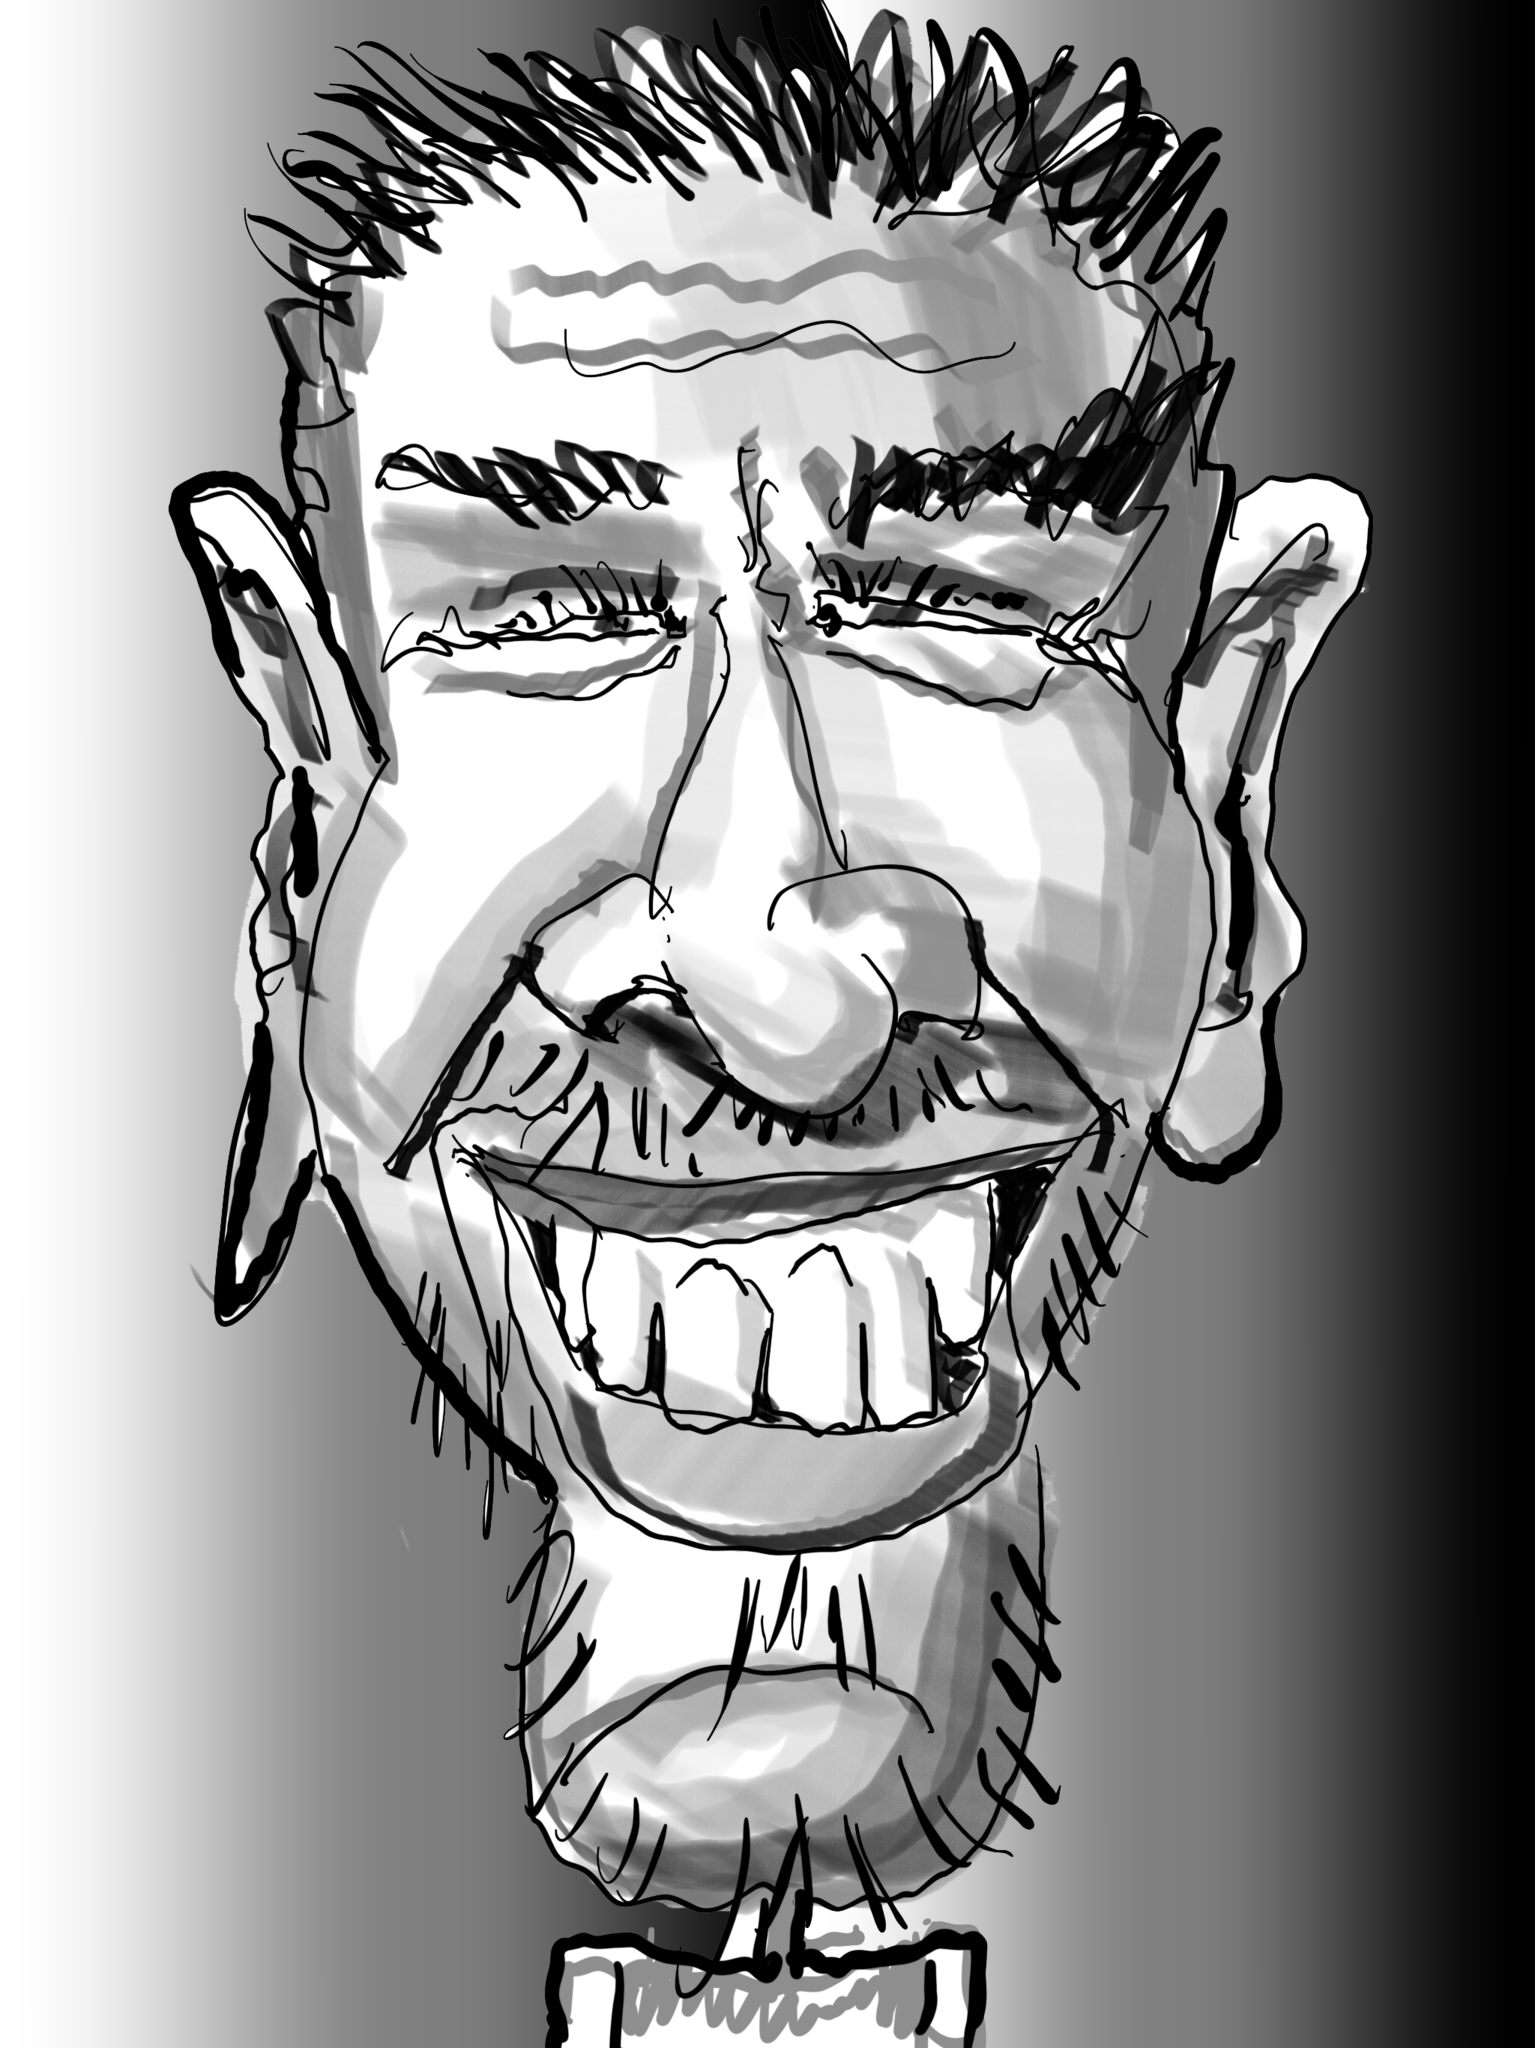 Ambiance caricatures